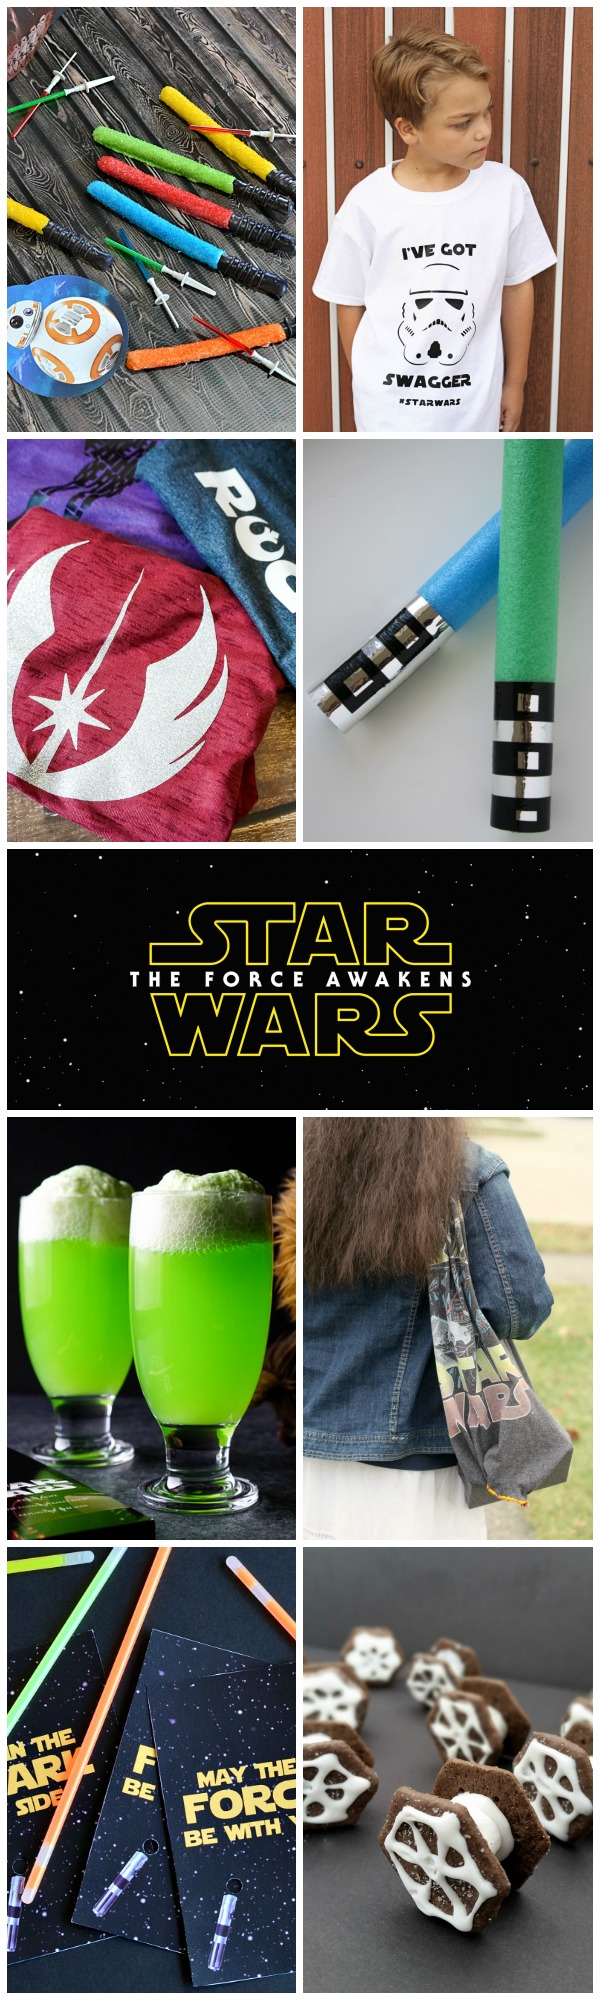 Star Wars - The Force Awakens {recipes and crafts}